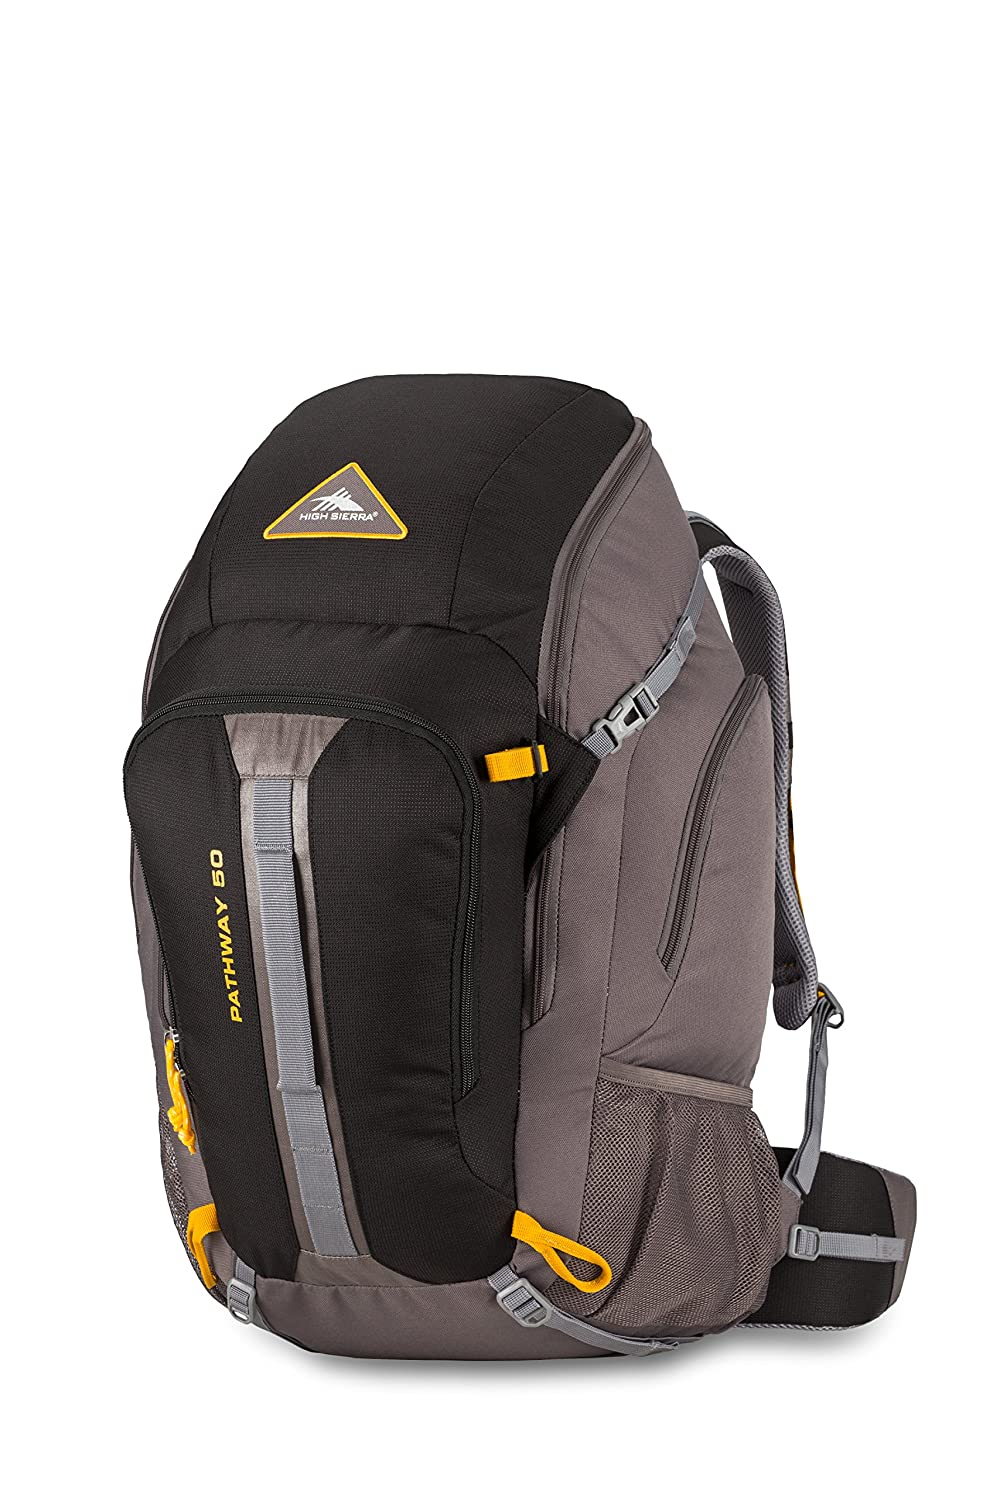 High Sierra 79547-5745 Pathway 50 l Frame Daypack, Black/State/Gold, Checked - Large Samsonite Corporation - CA